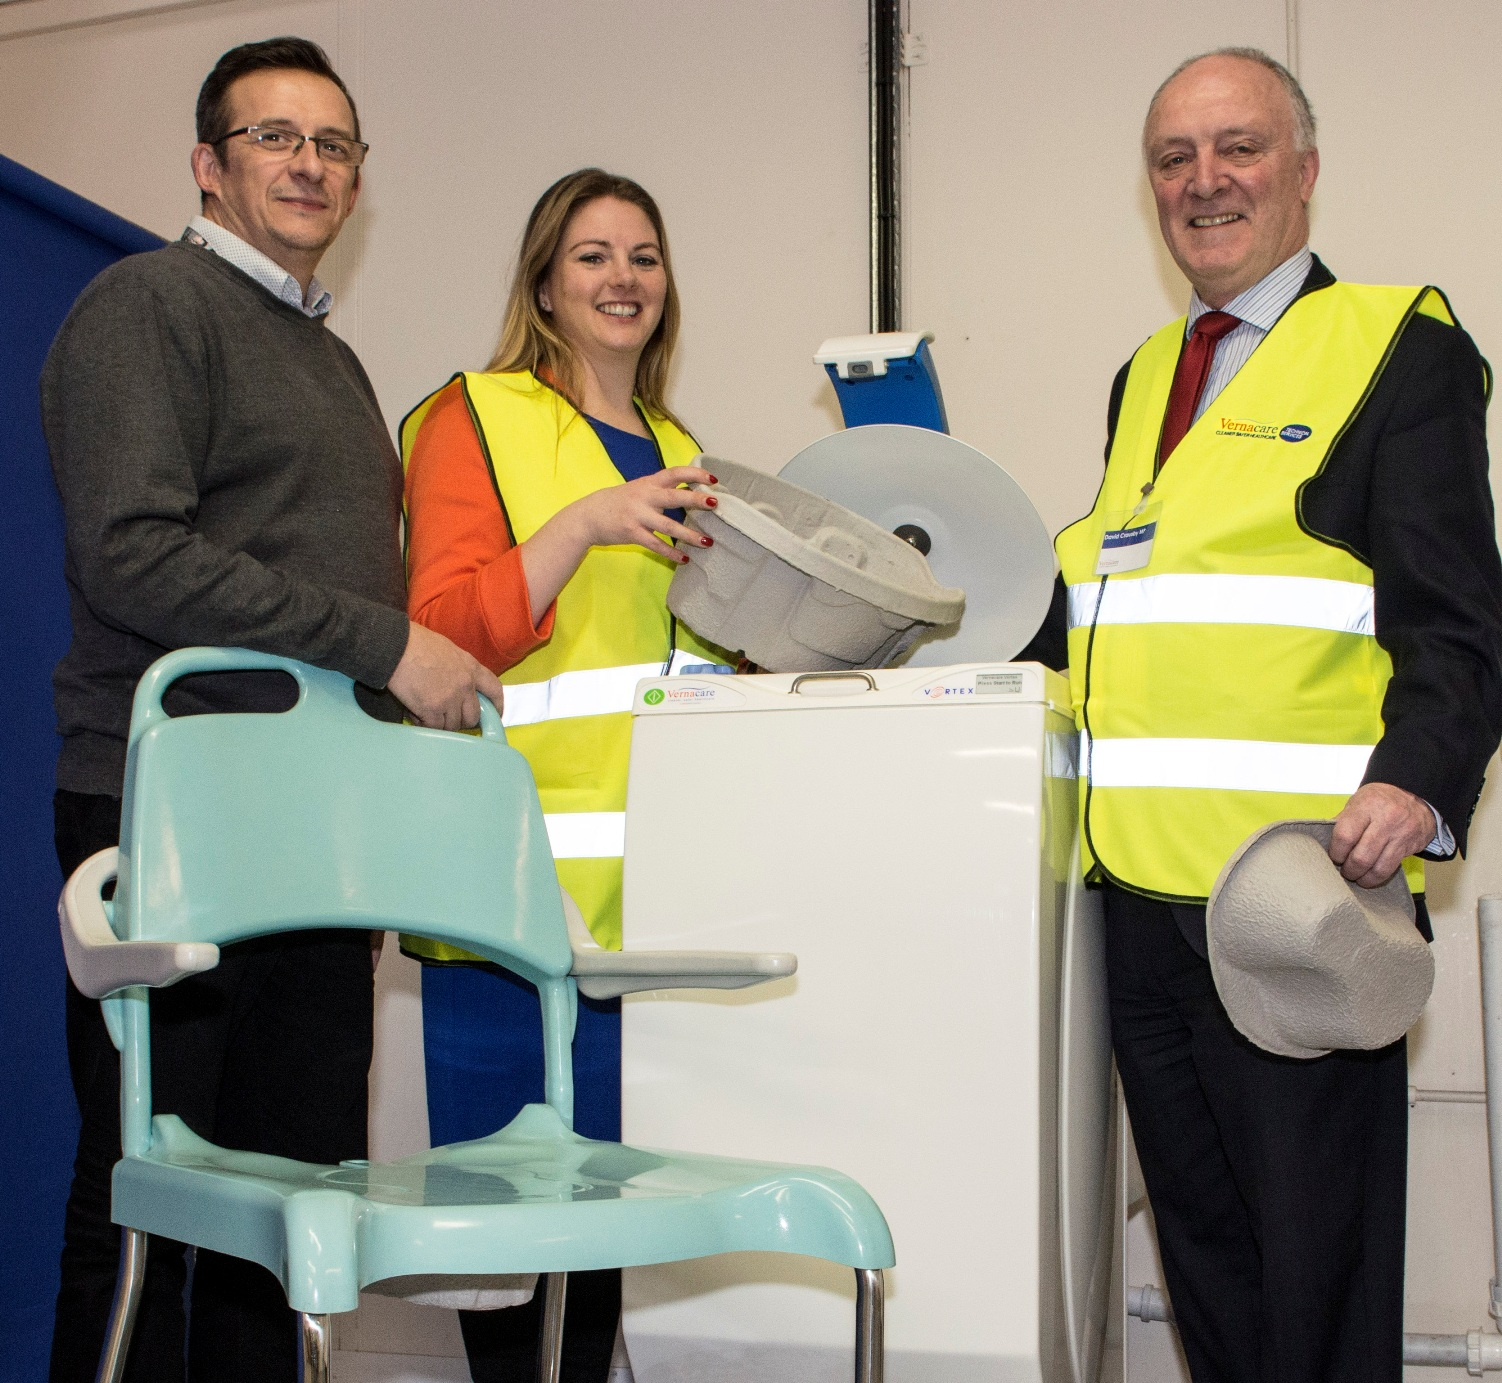 Pictured_(l-r)_in_Vernacare's_RD_centre_are__Wayne_Nelson_and_Emma_Sheldon_of_Vernacare_and_David_Crausby_MP_viewing_the_company's_innovative_produc.jpg